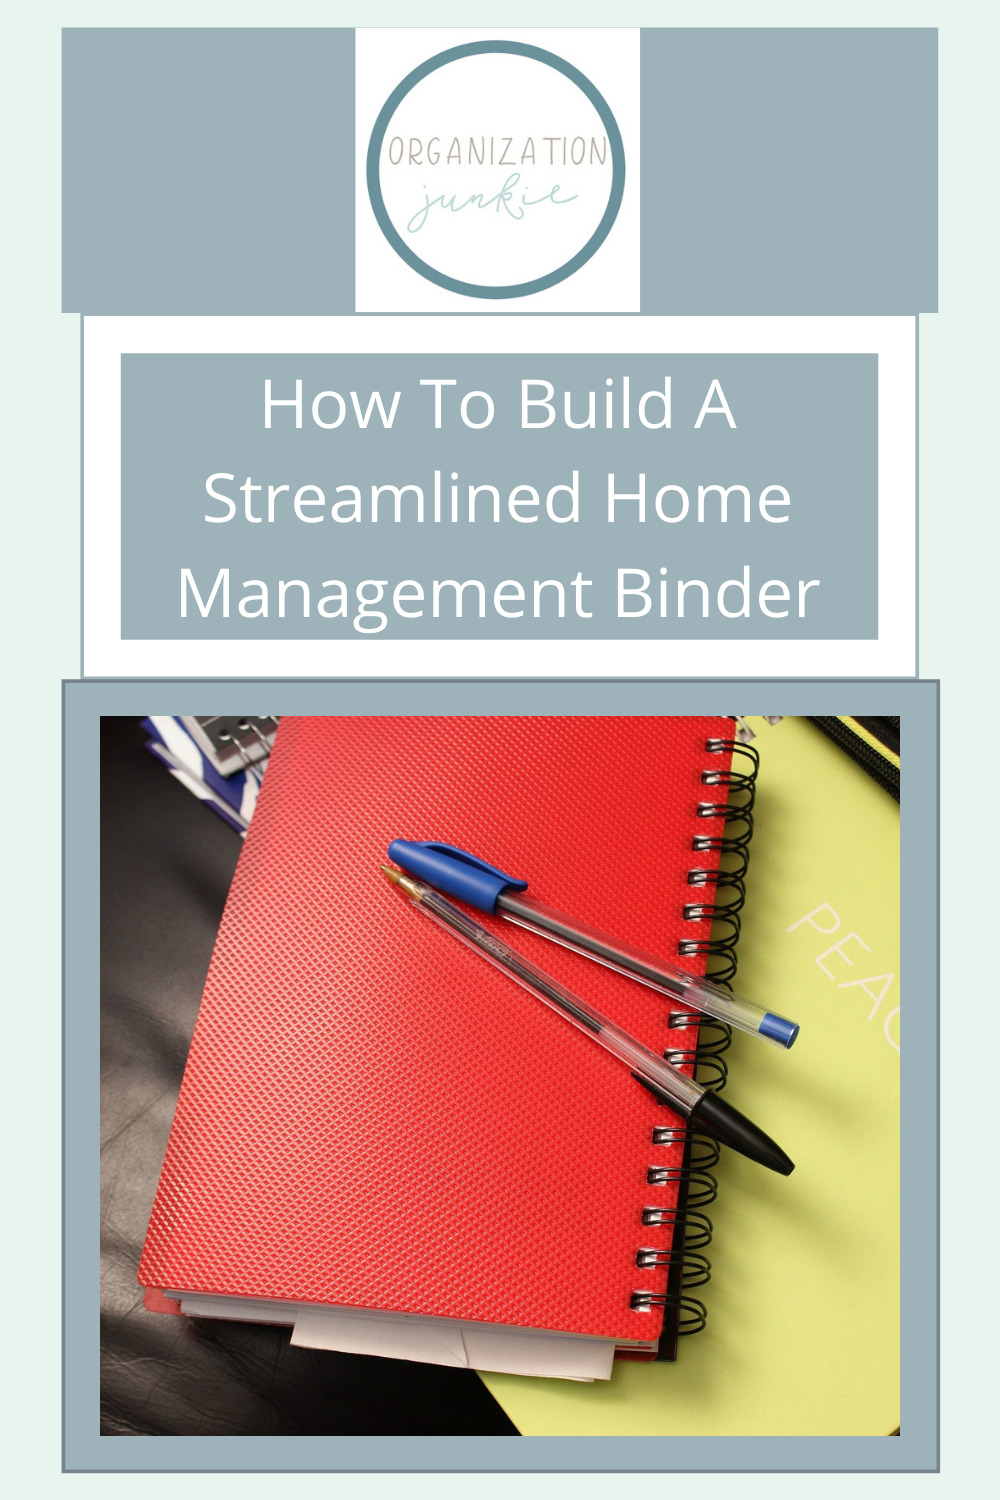 Organizationjunkie.com makes organizing your entire life easier than ever! Find creative ways to stay on top of day-to-day clutter. Make things easier by keeping a straightforward home management binder!